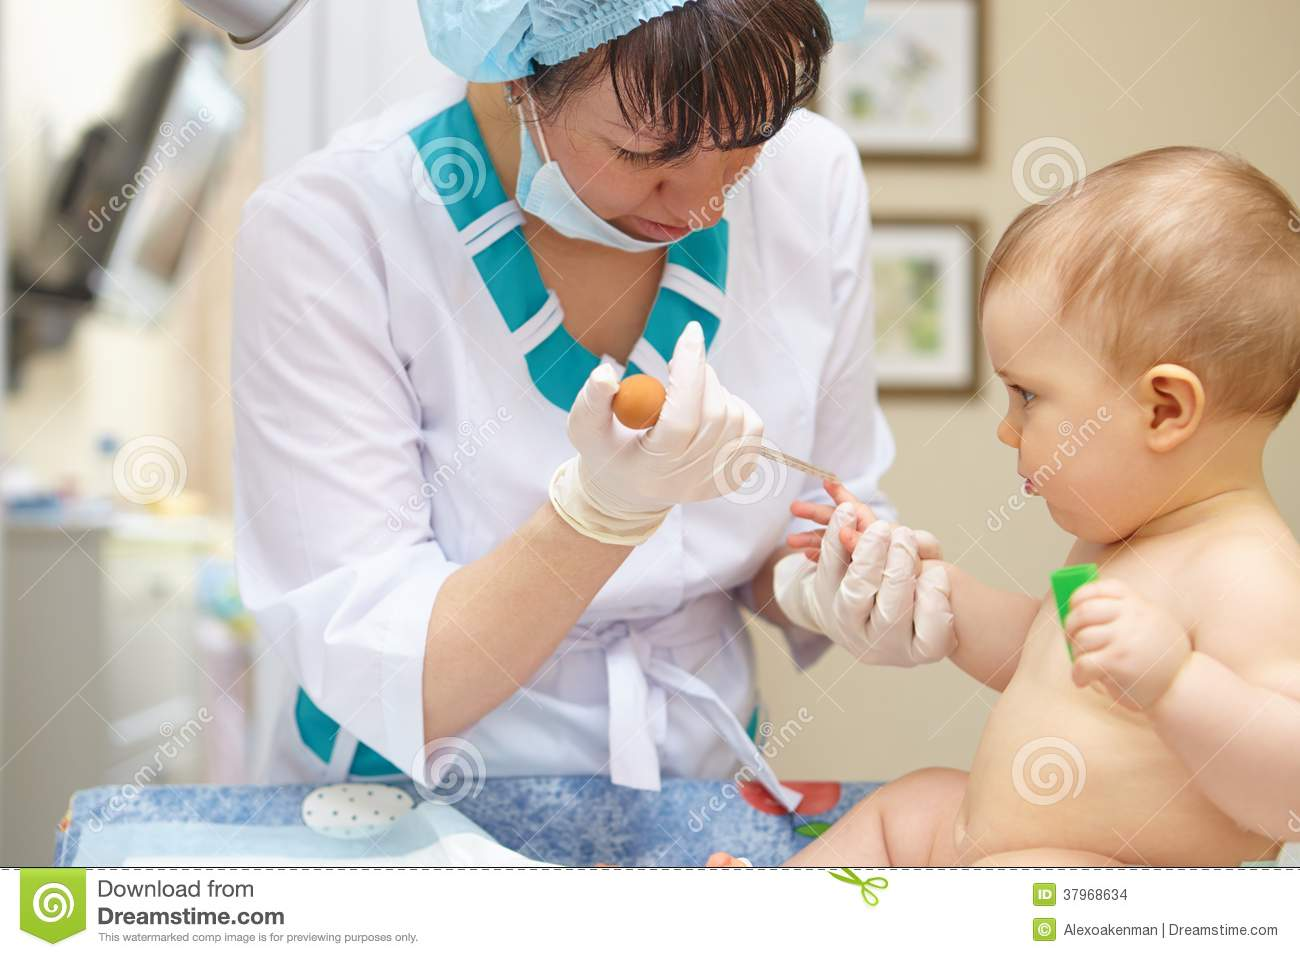 baby healthcare and treatment medical research blood tests stock images image 37968634. Black Bedroom Furniture Sets. Home Design Ideas